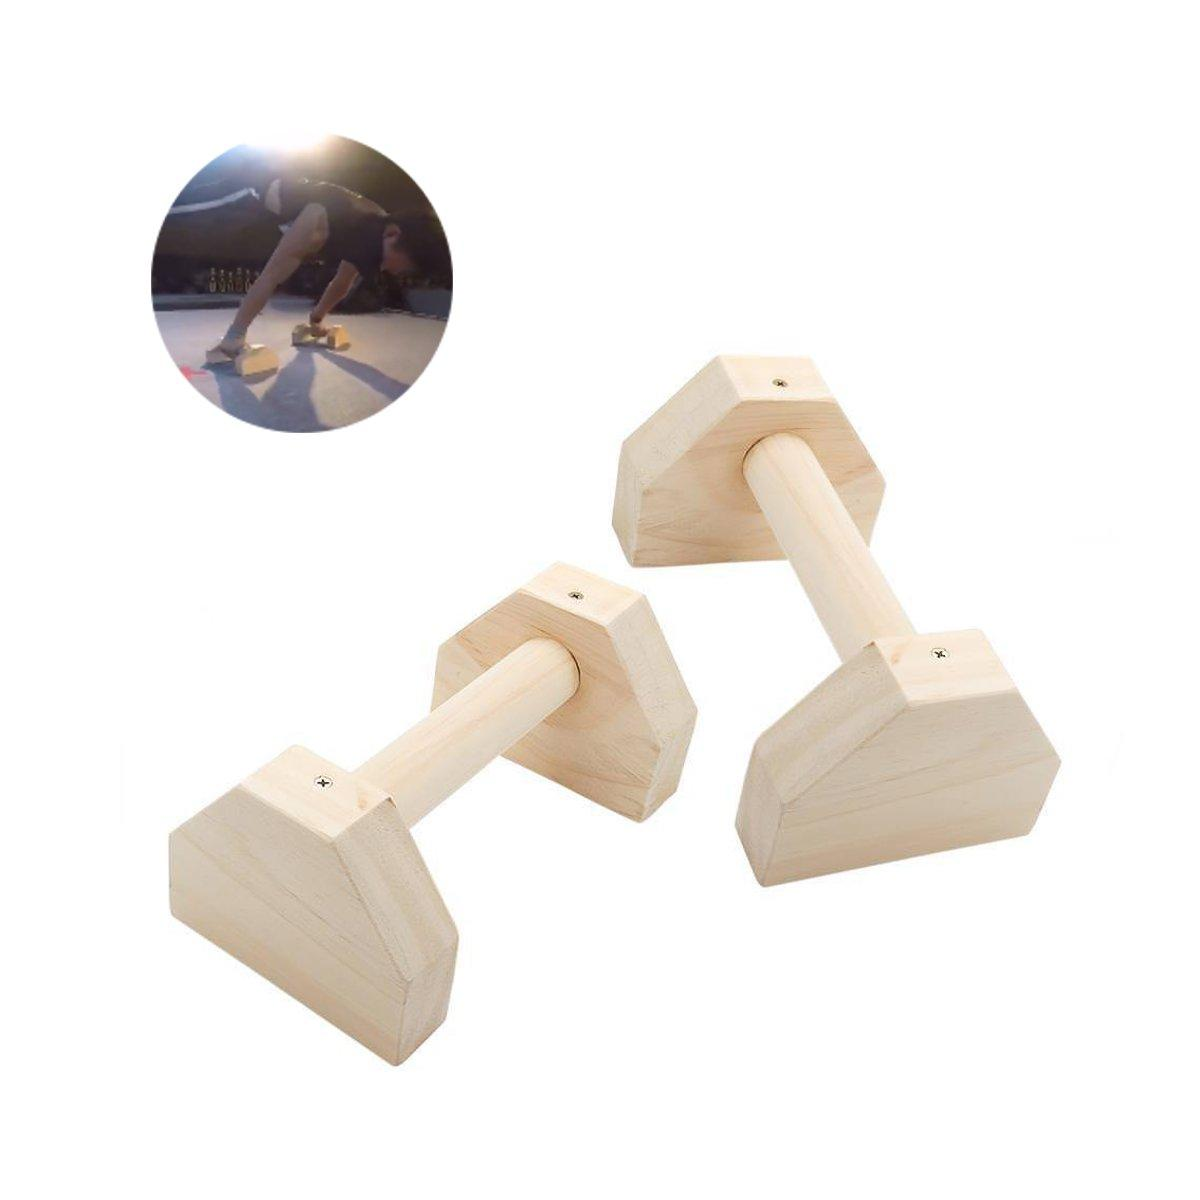 KALOAD Wooden Parallettes Gymnastics Calisthenics Handstand Bar Fitness Push Up Stand